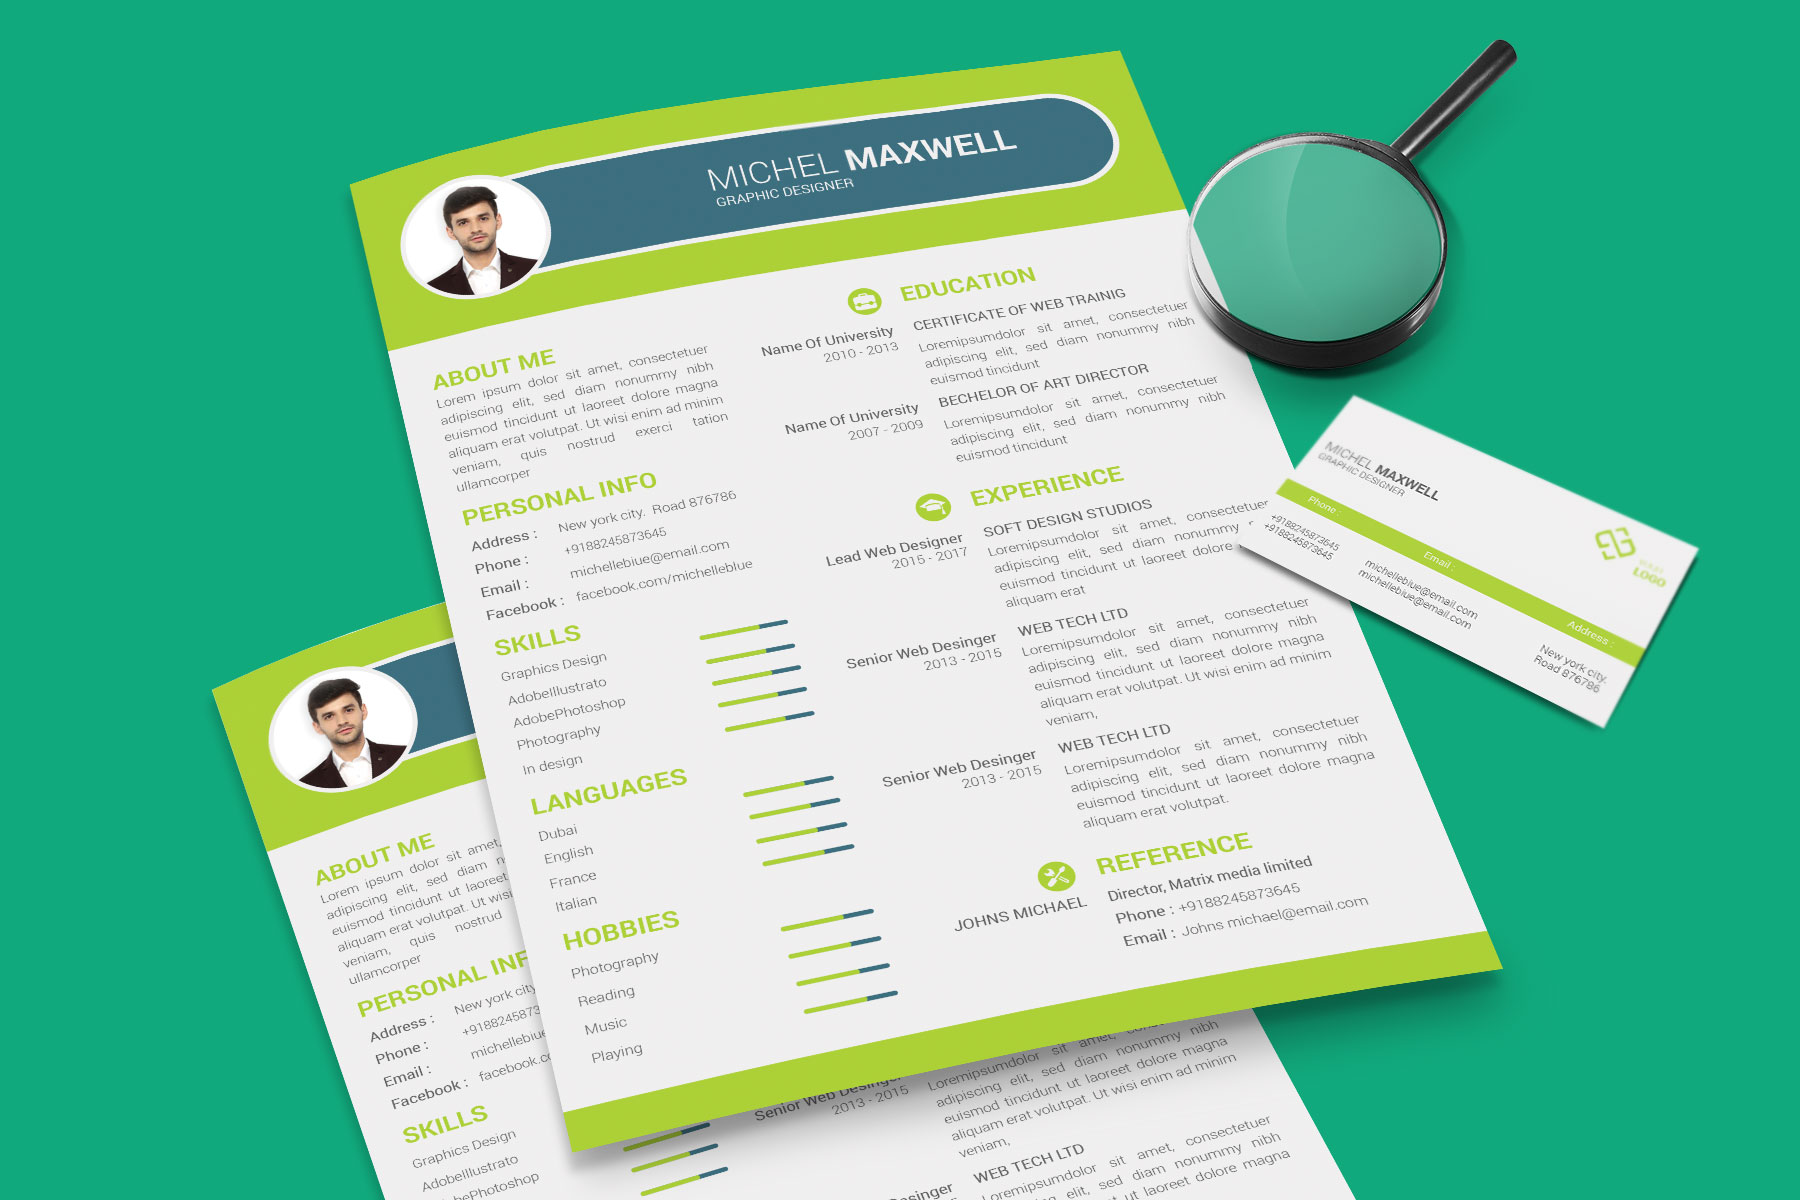 Professional Cv Resume Bonus business card Word/PSD,AI example image 6